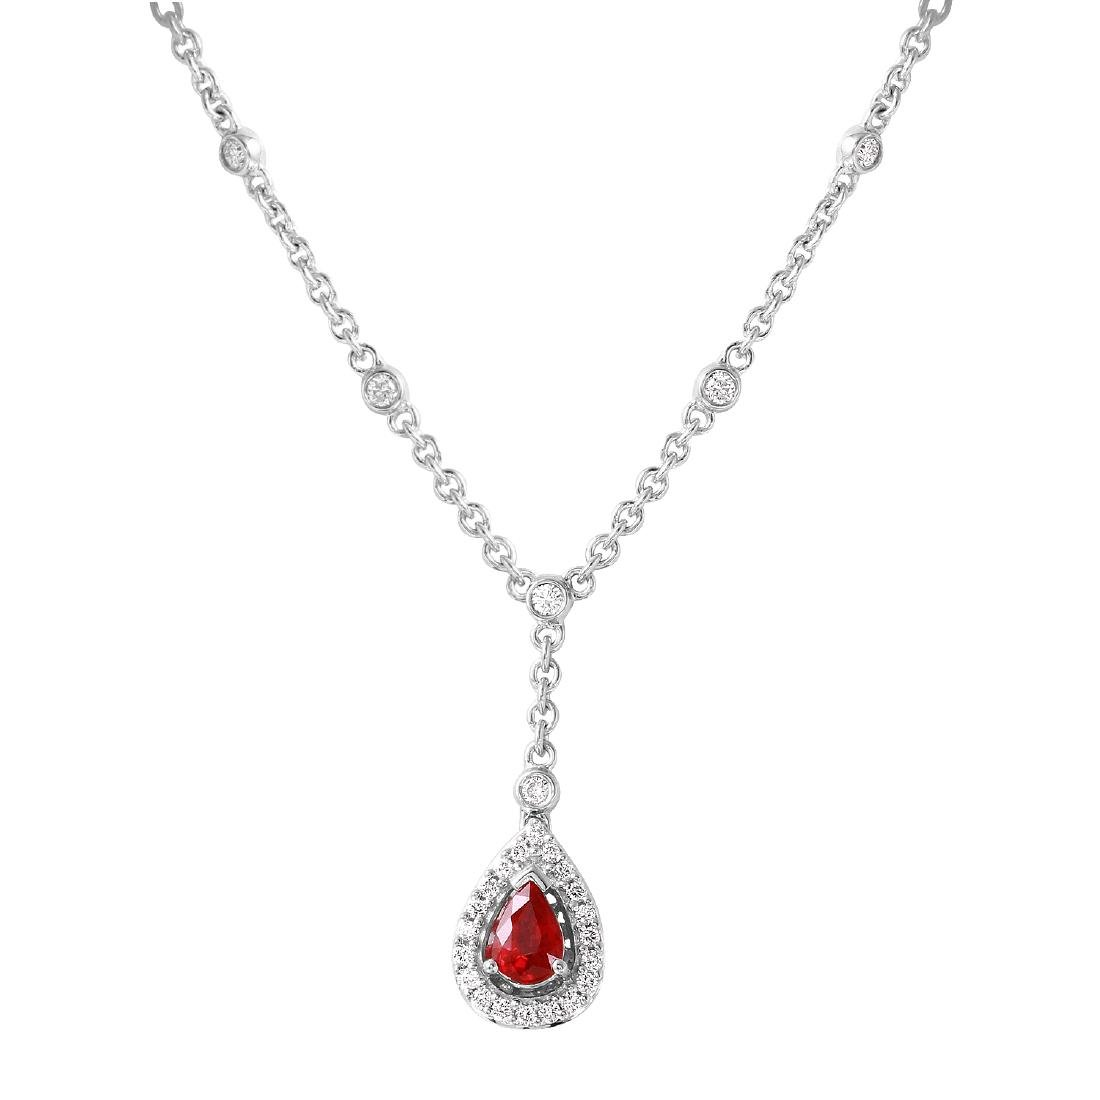 14KT White Gold Ruby & Diamond Necklace